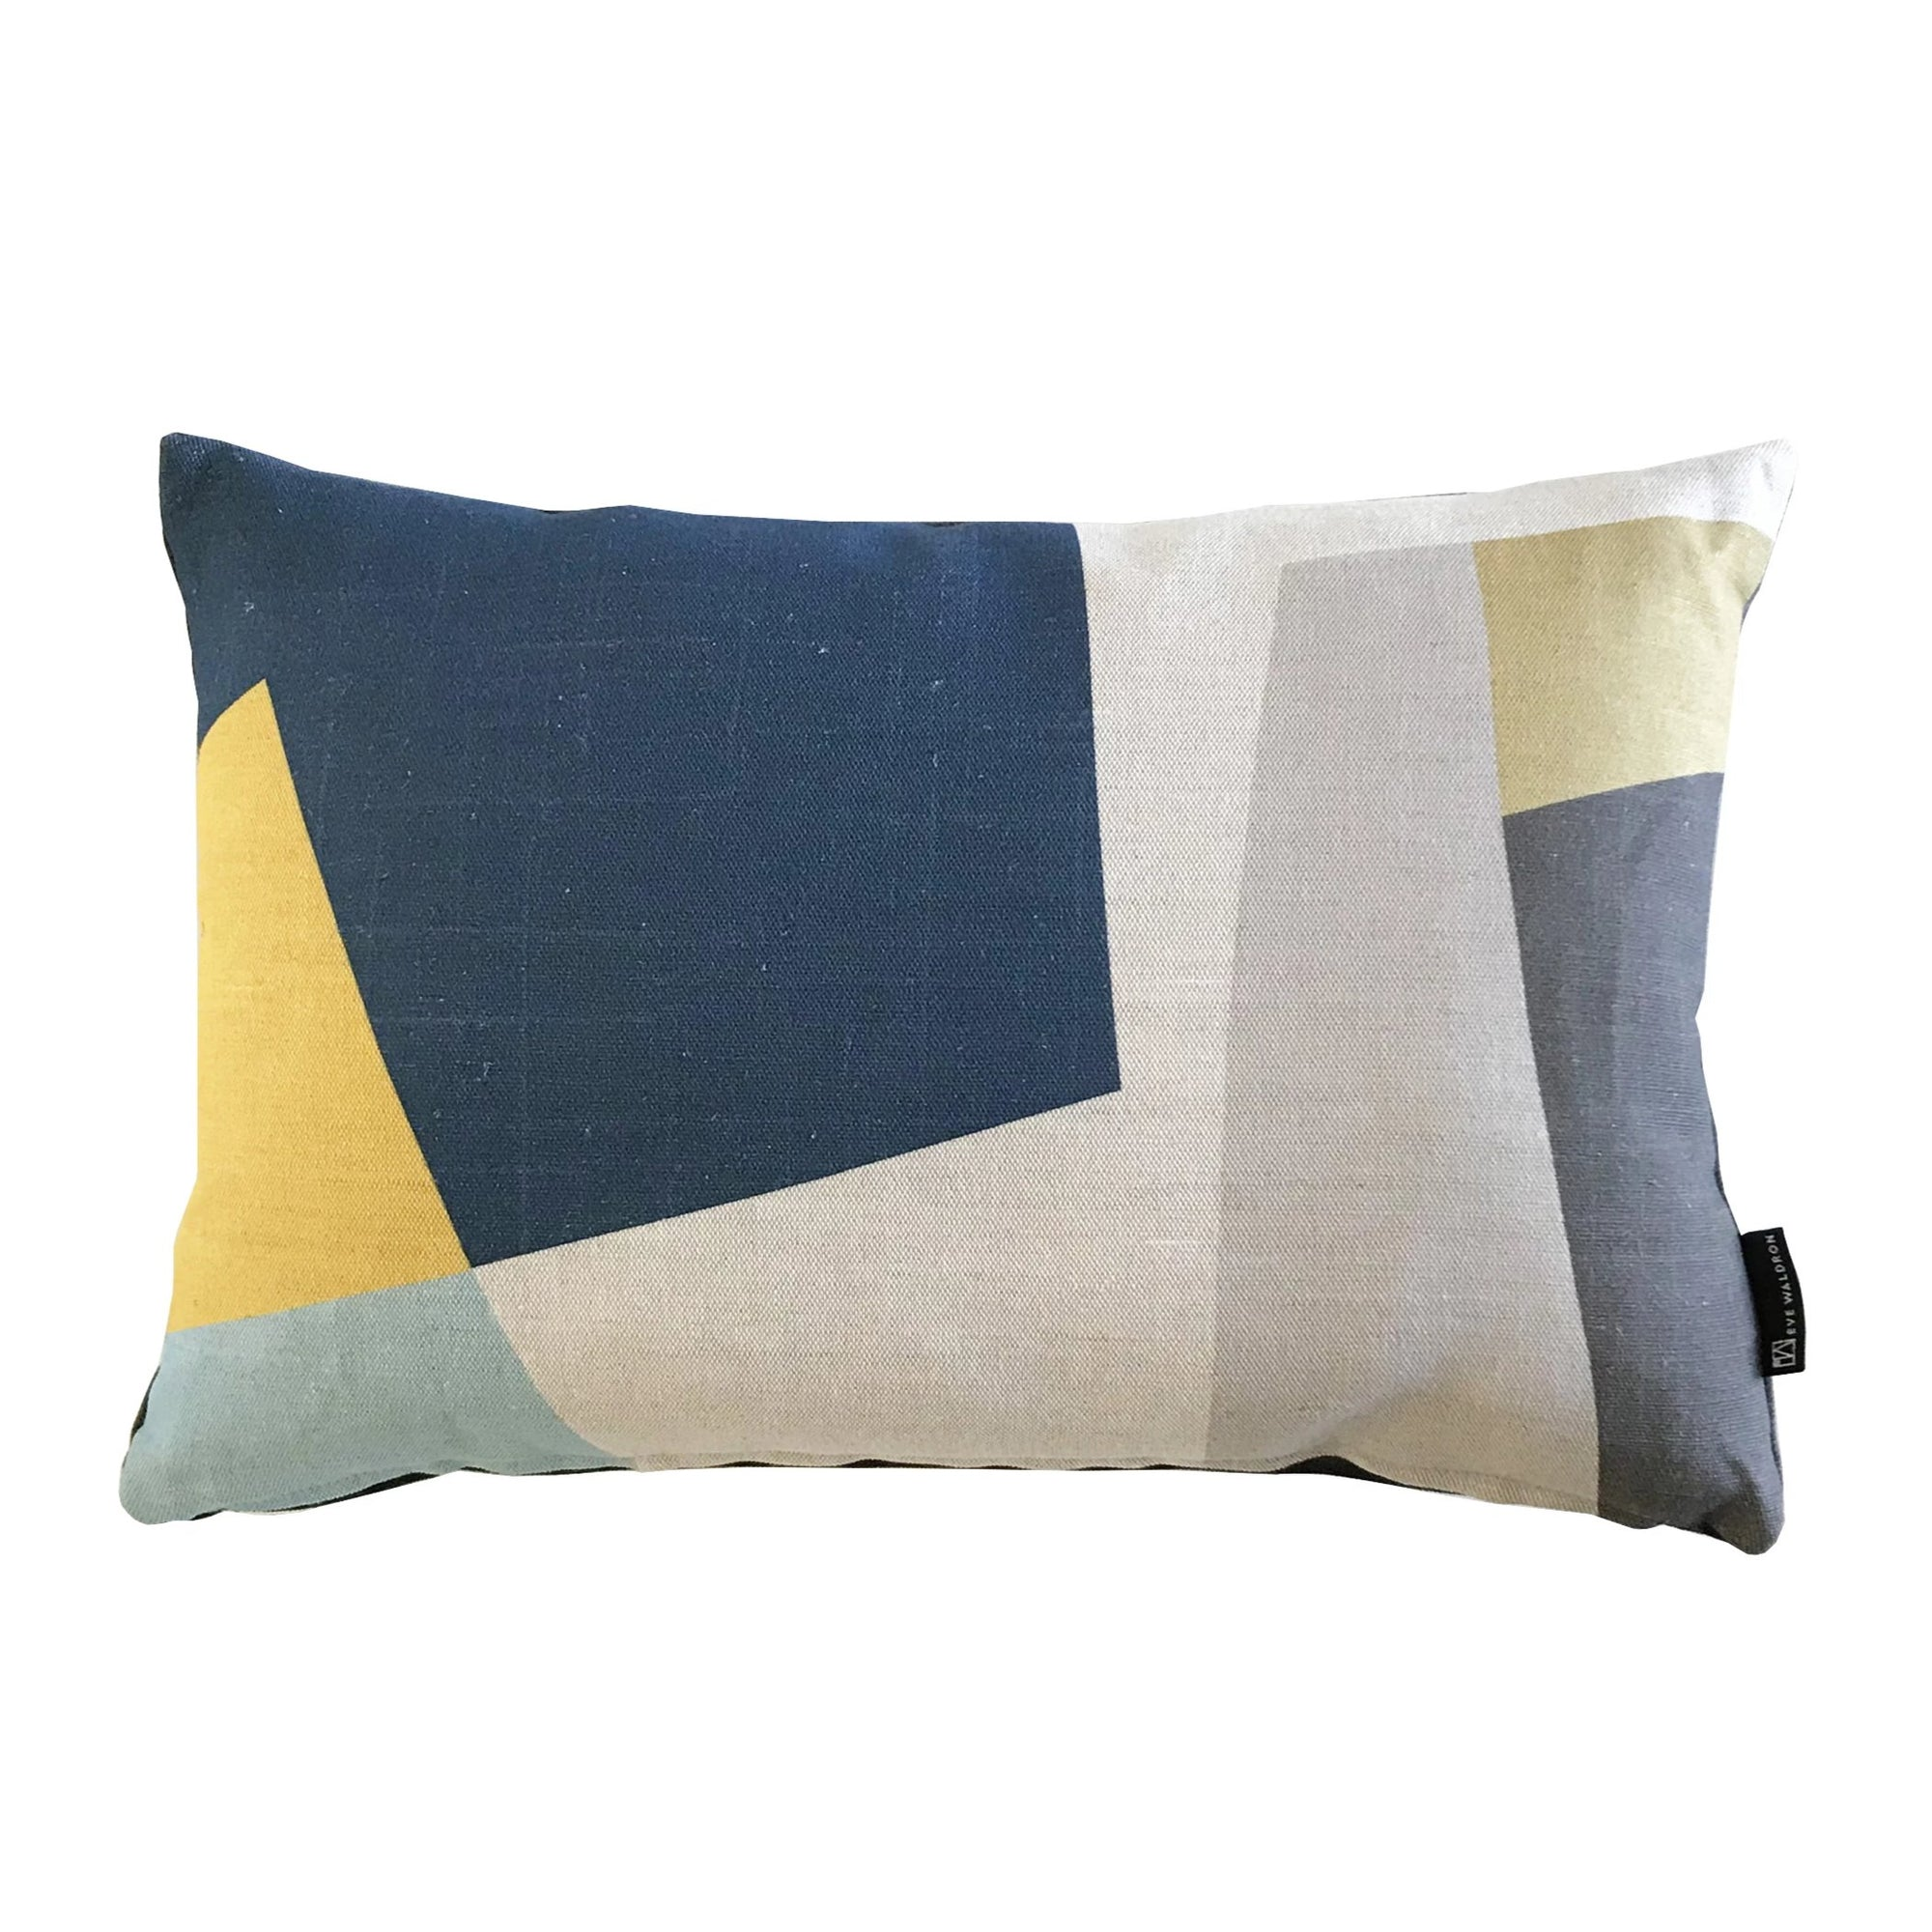 Eve Waldron Design Office Cushion Blue Window 470 x 310mm